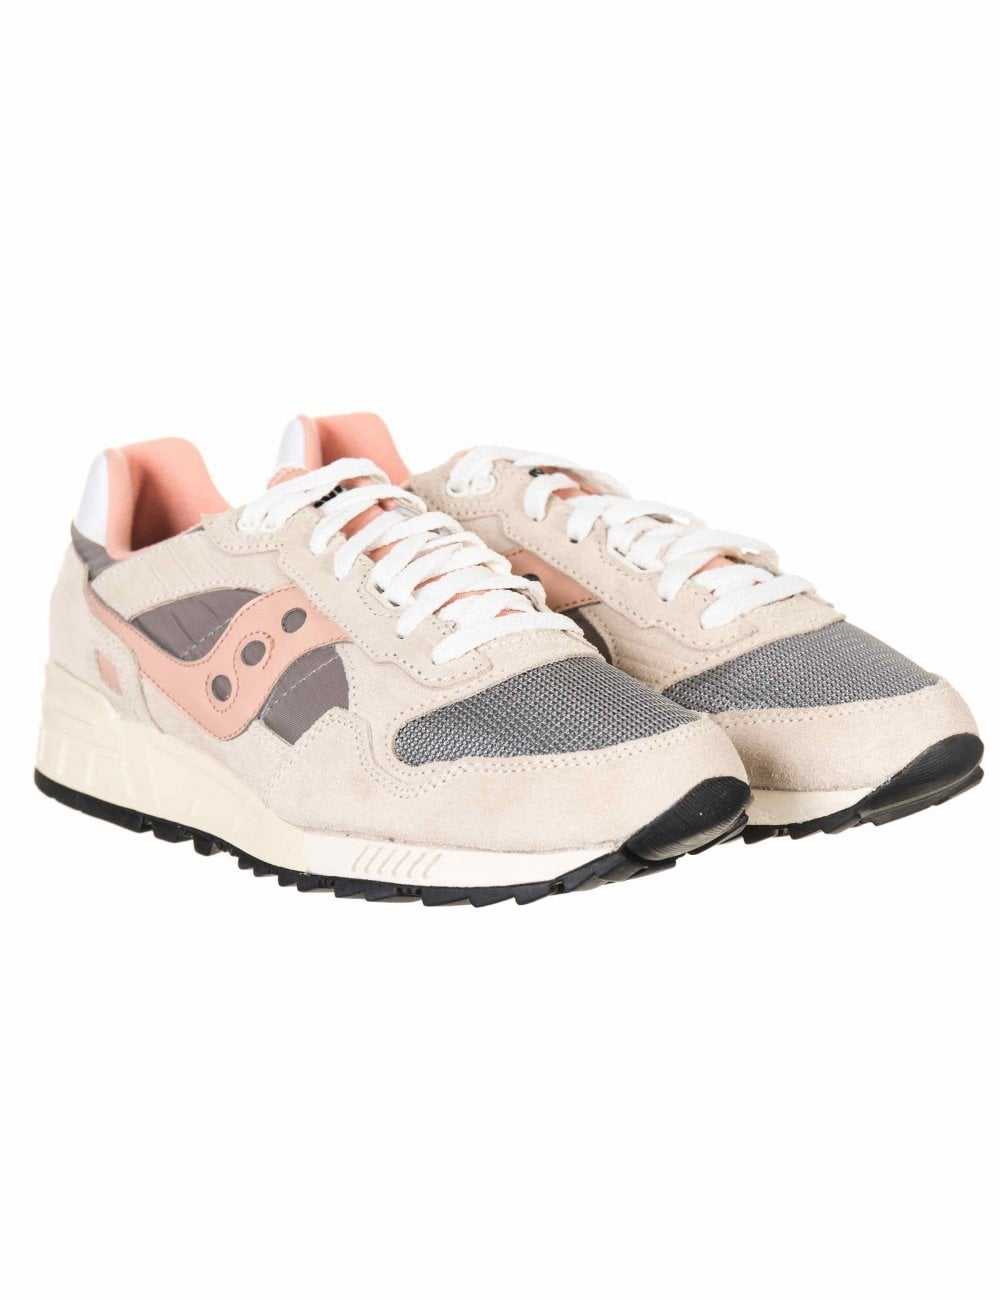 013a2bb81b00 Saucony Shadow 5000 Vintage Trainers - Off-White Grey Pink ...